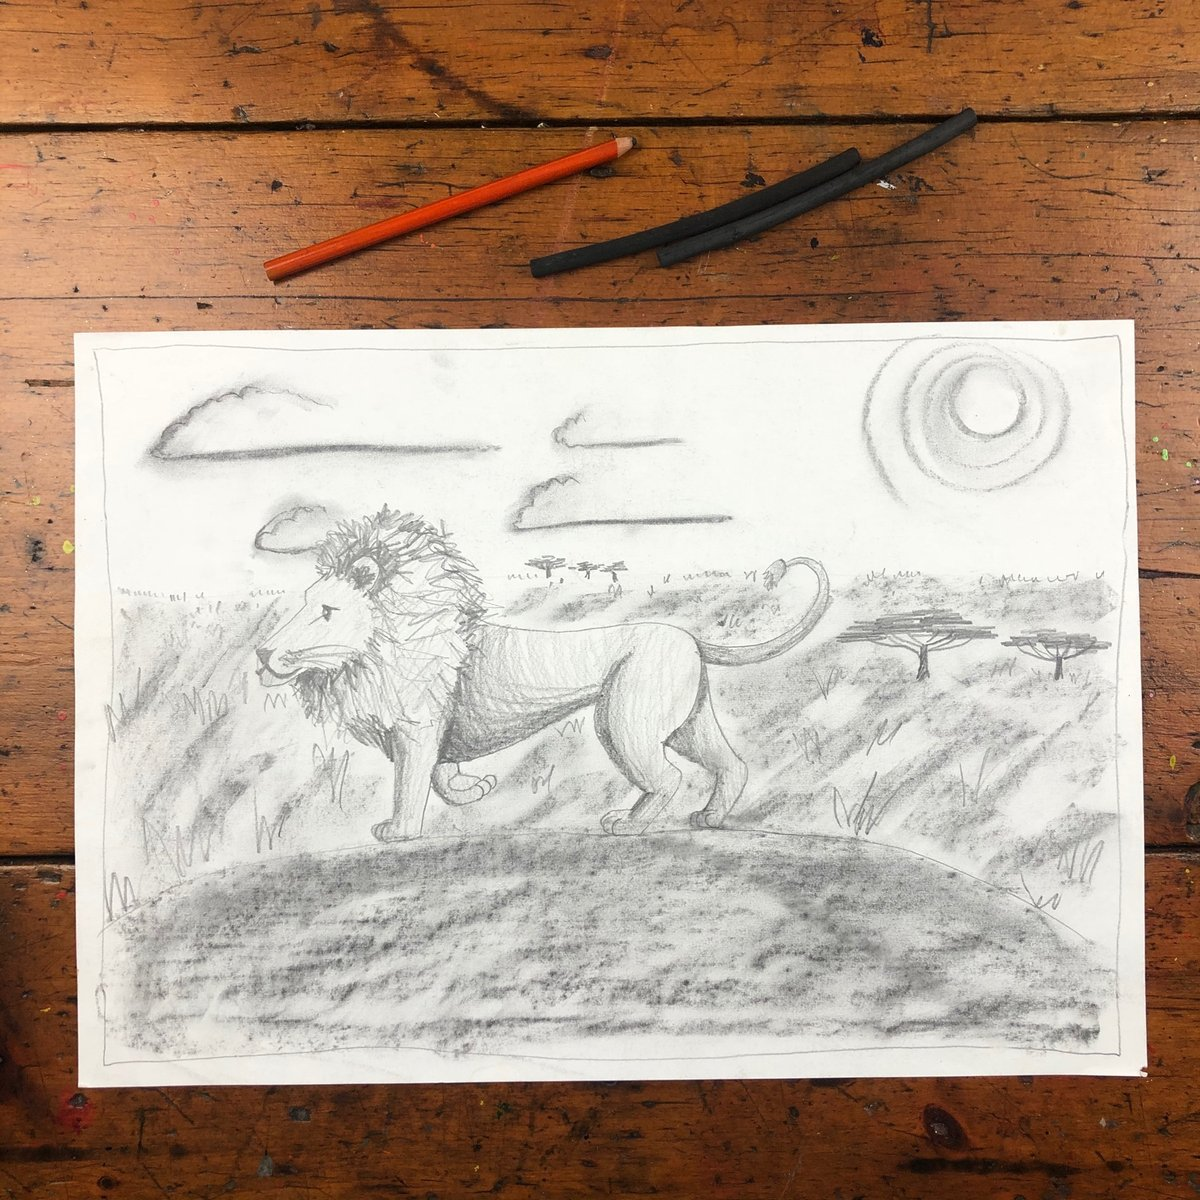 "THROWBACK: KIDS ART LESSON  Login to https://t.co/nf5DFPUdaf and search ""lion"" to check out this lesson.  #art #creativekids #kidsart #learntodraw  #kidsartclass #homeschool #primaryschool #elementaryschool #arteducation  #education #_artventure #lion #lionart https://t.co/ncRe7FkCae"